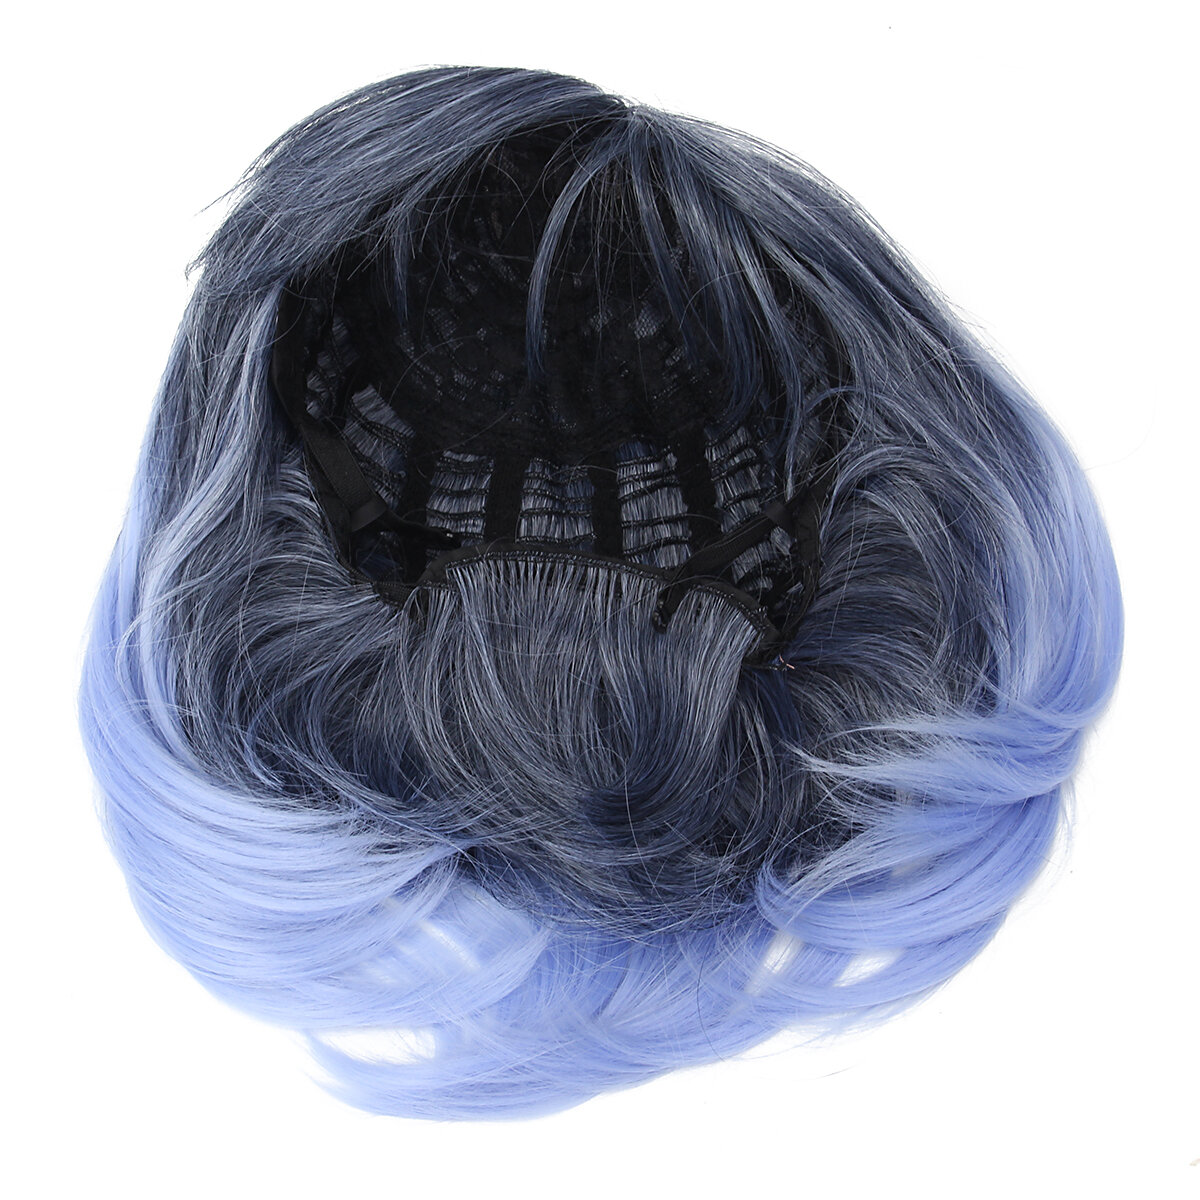 35 40cm Blue Gradient Cosplay Peruca Mulher Curto Cabelo Curly Anime Natural Role Play Capless - 5